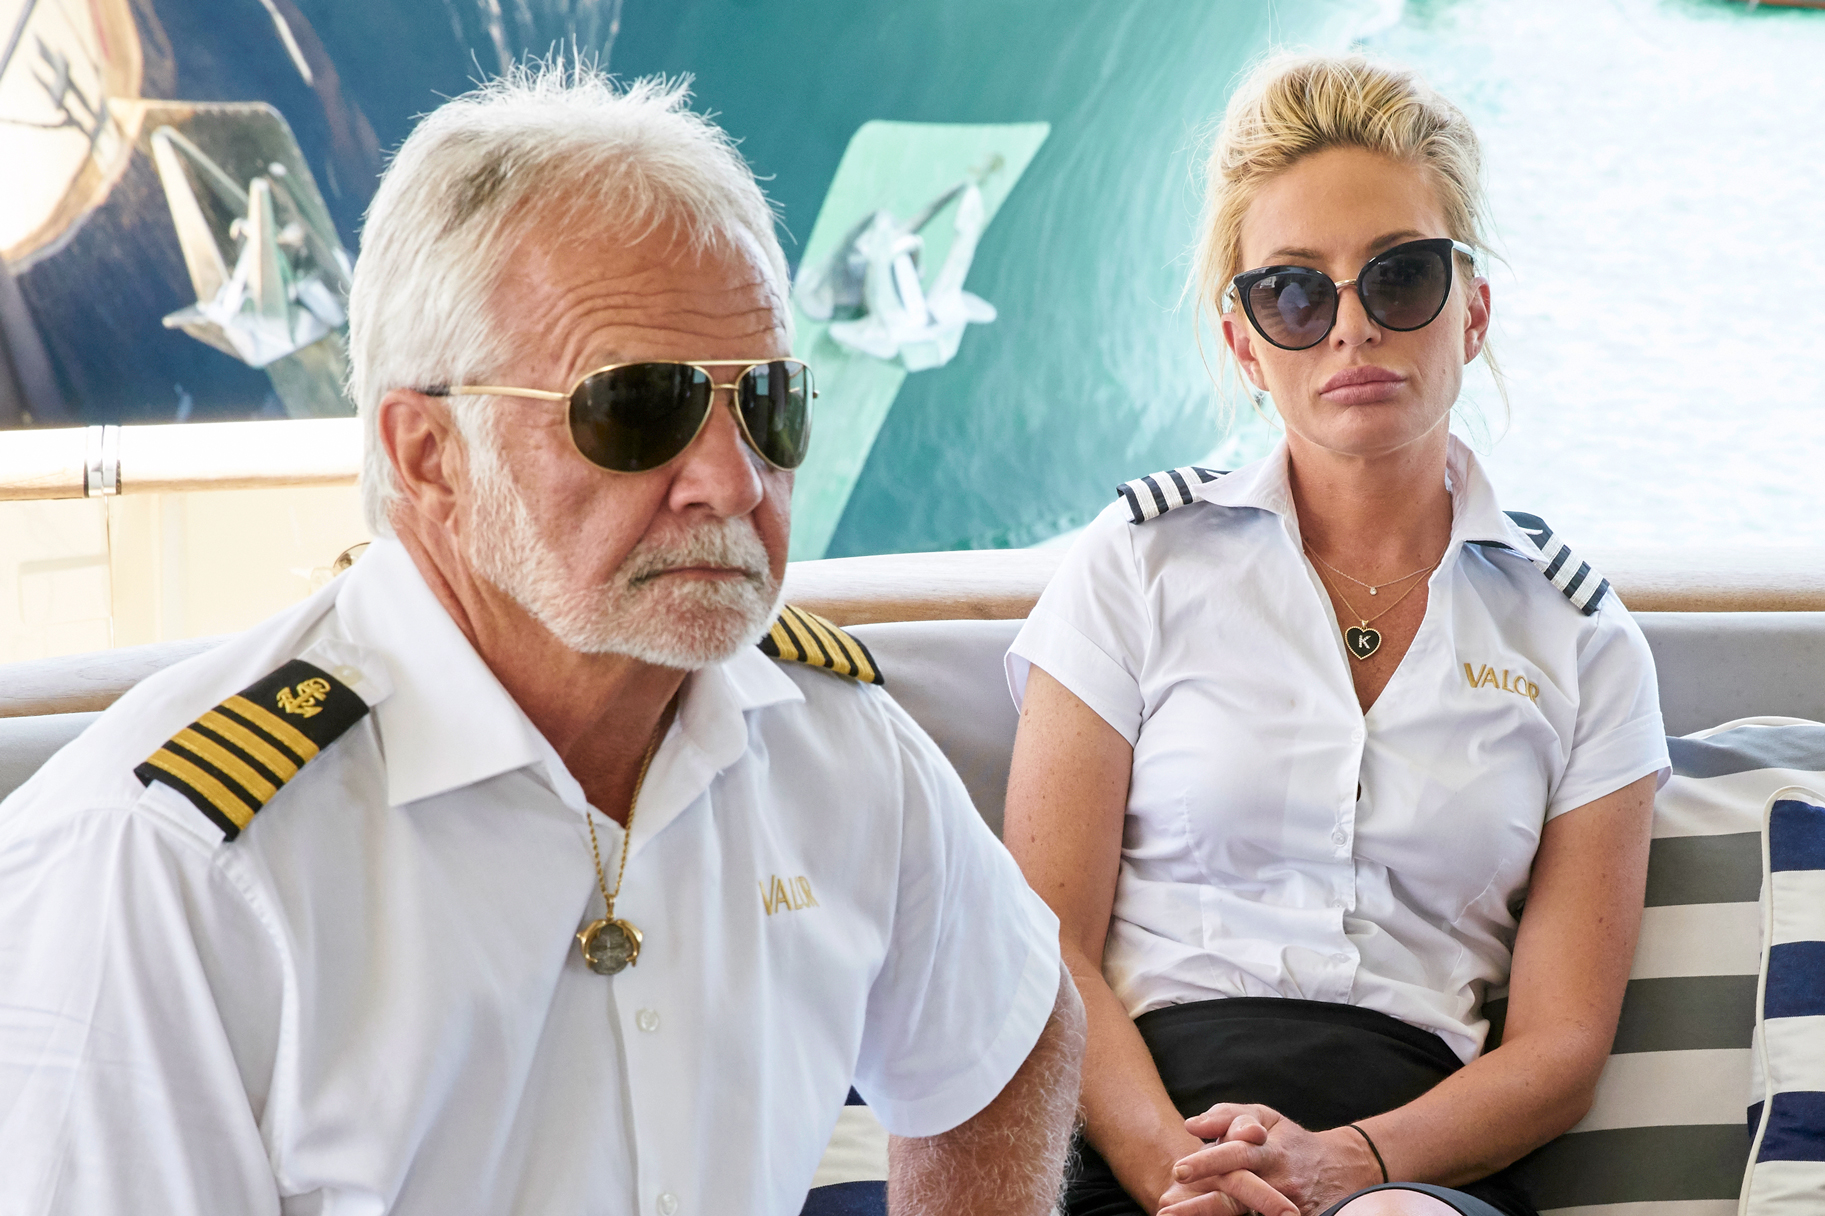 Kate Chastain Captain Lee Below Deck Season 8